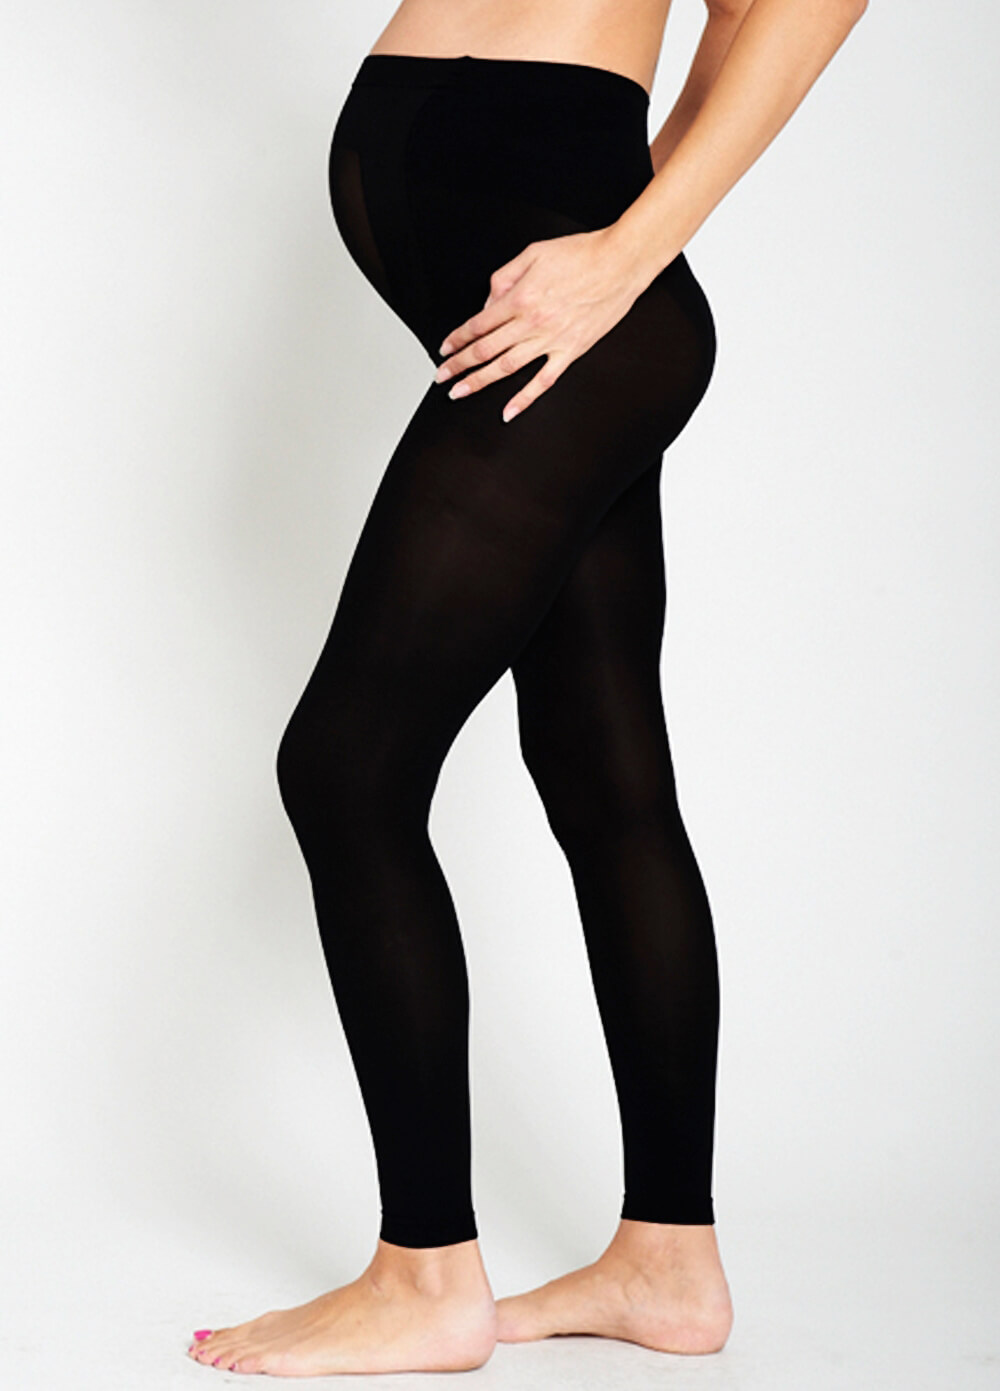 Baby Bump 200 Denier Opaque Maternity Footless Tights by Ambra